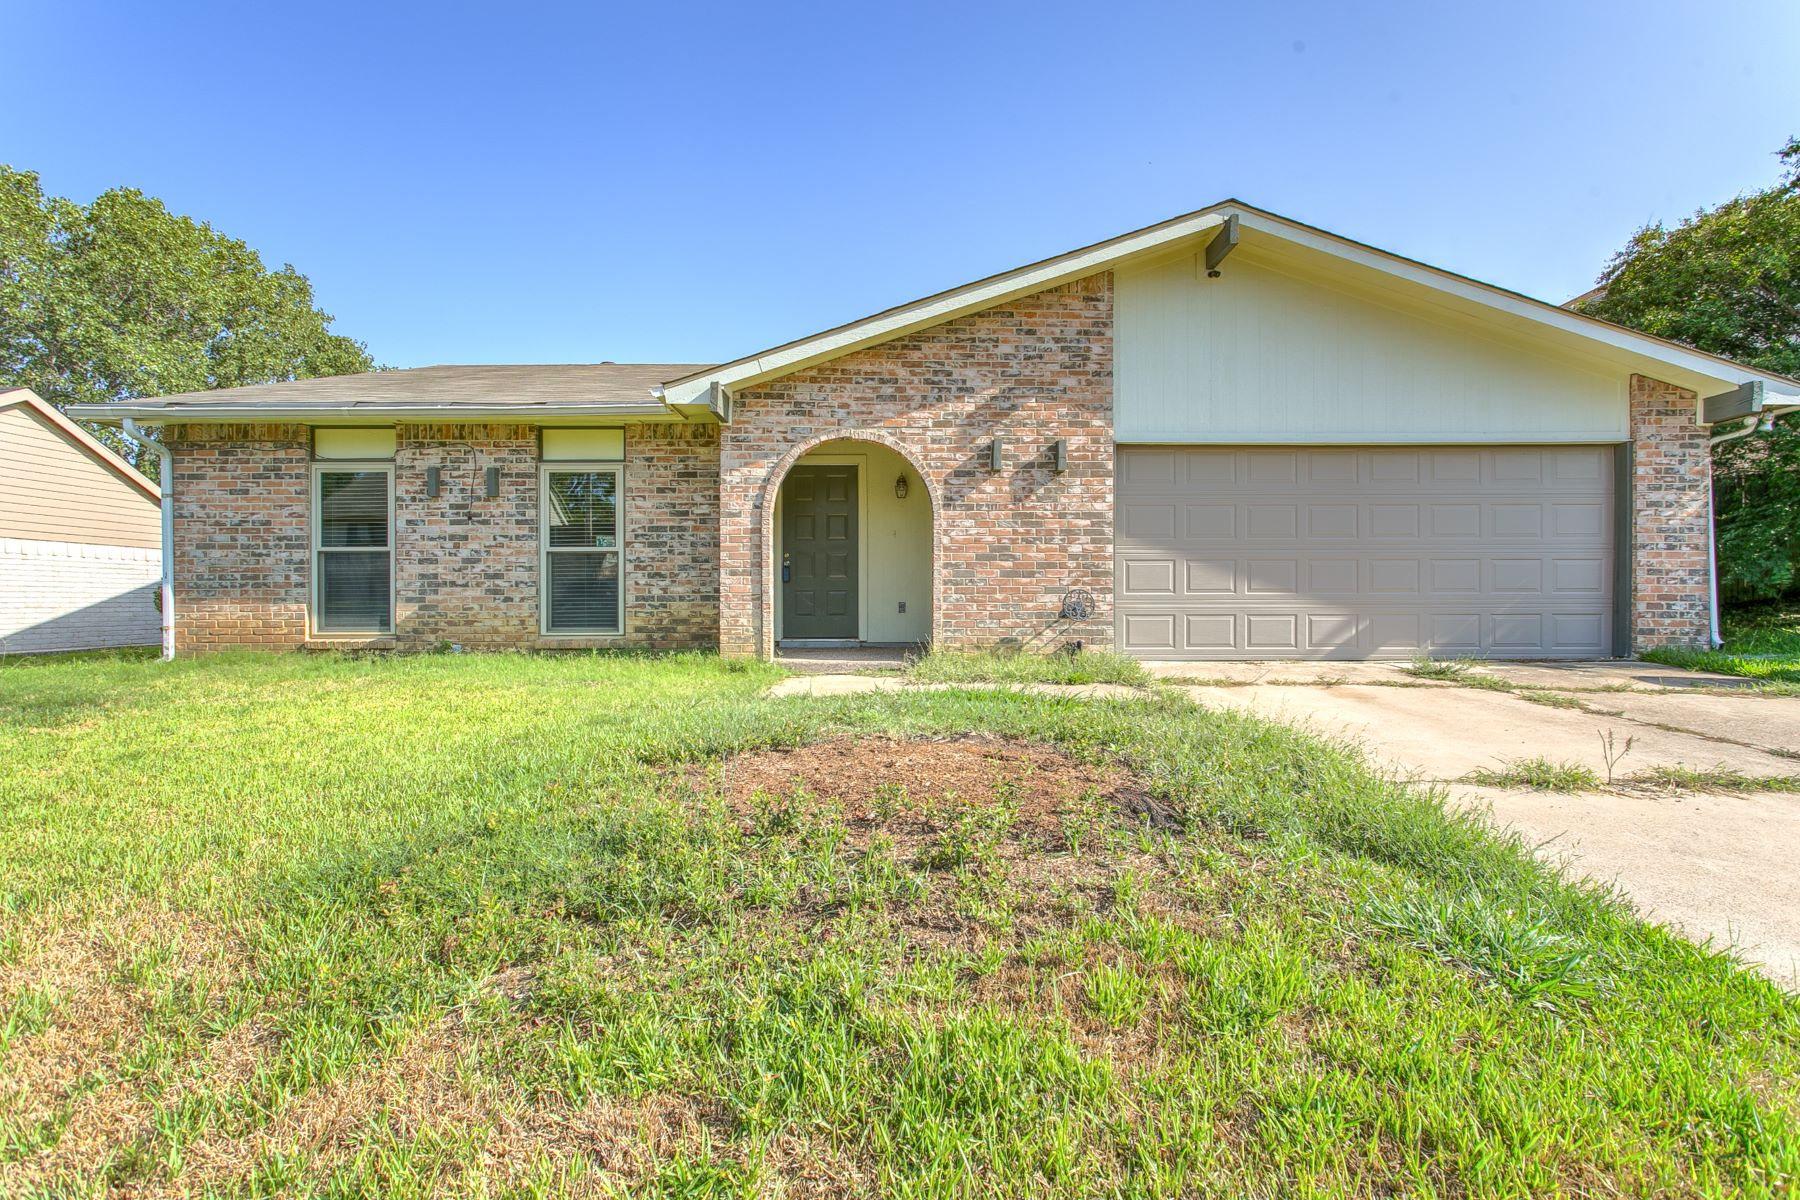 Single Family Homes for Sale at Open concept one story home with lots of potential! 7107 Greenspring Drive Arlington, Texas 76016 United States